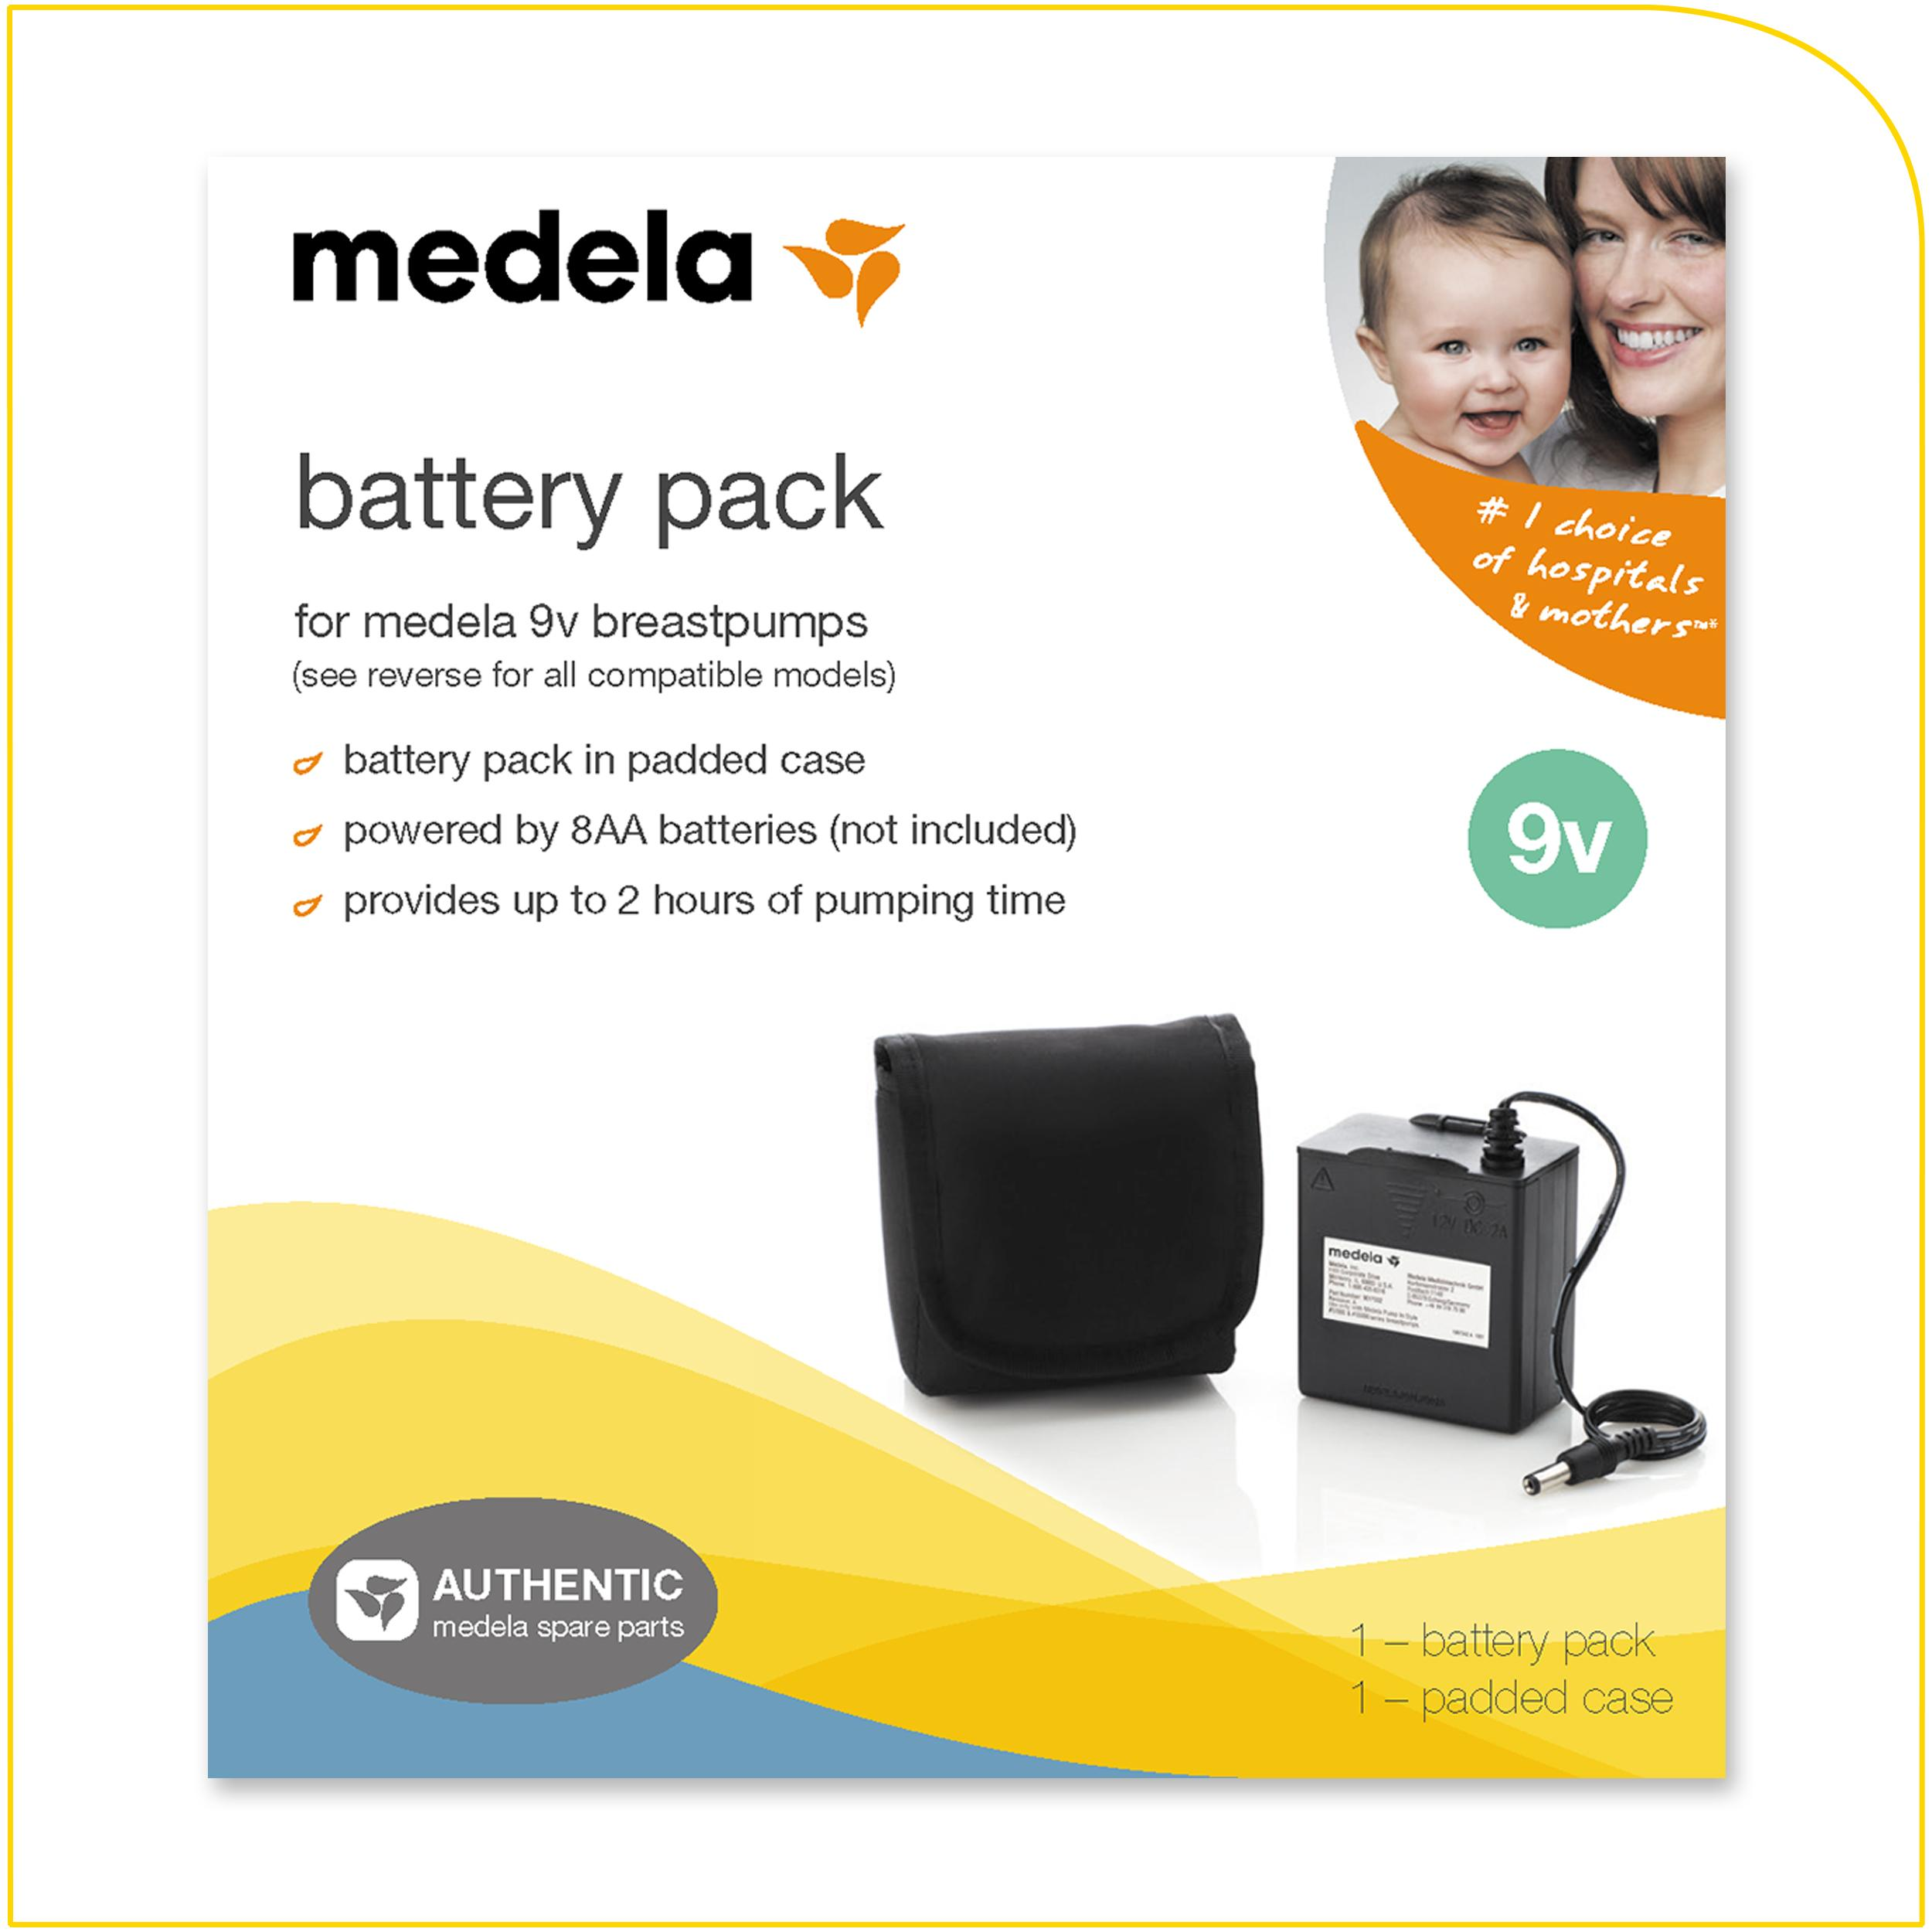 Amazoncom  Medela Pump In Style Battery Pack, Portable Unit For 9 Volt Pump In Style -9833